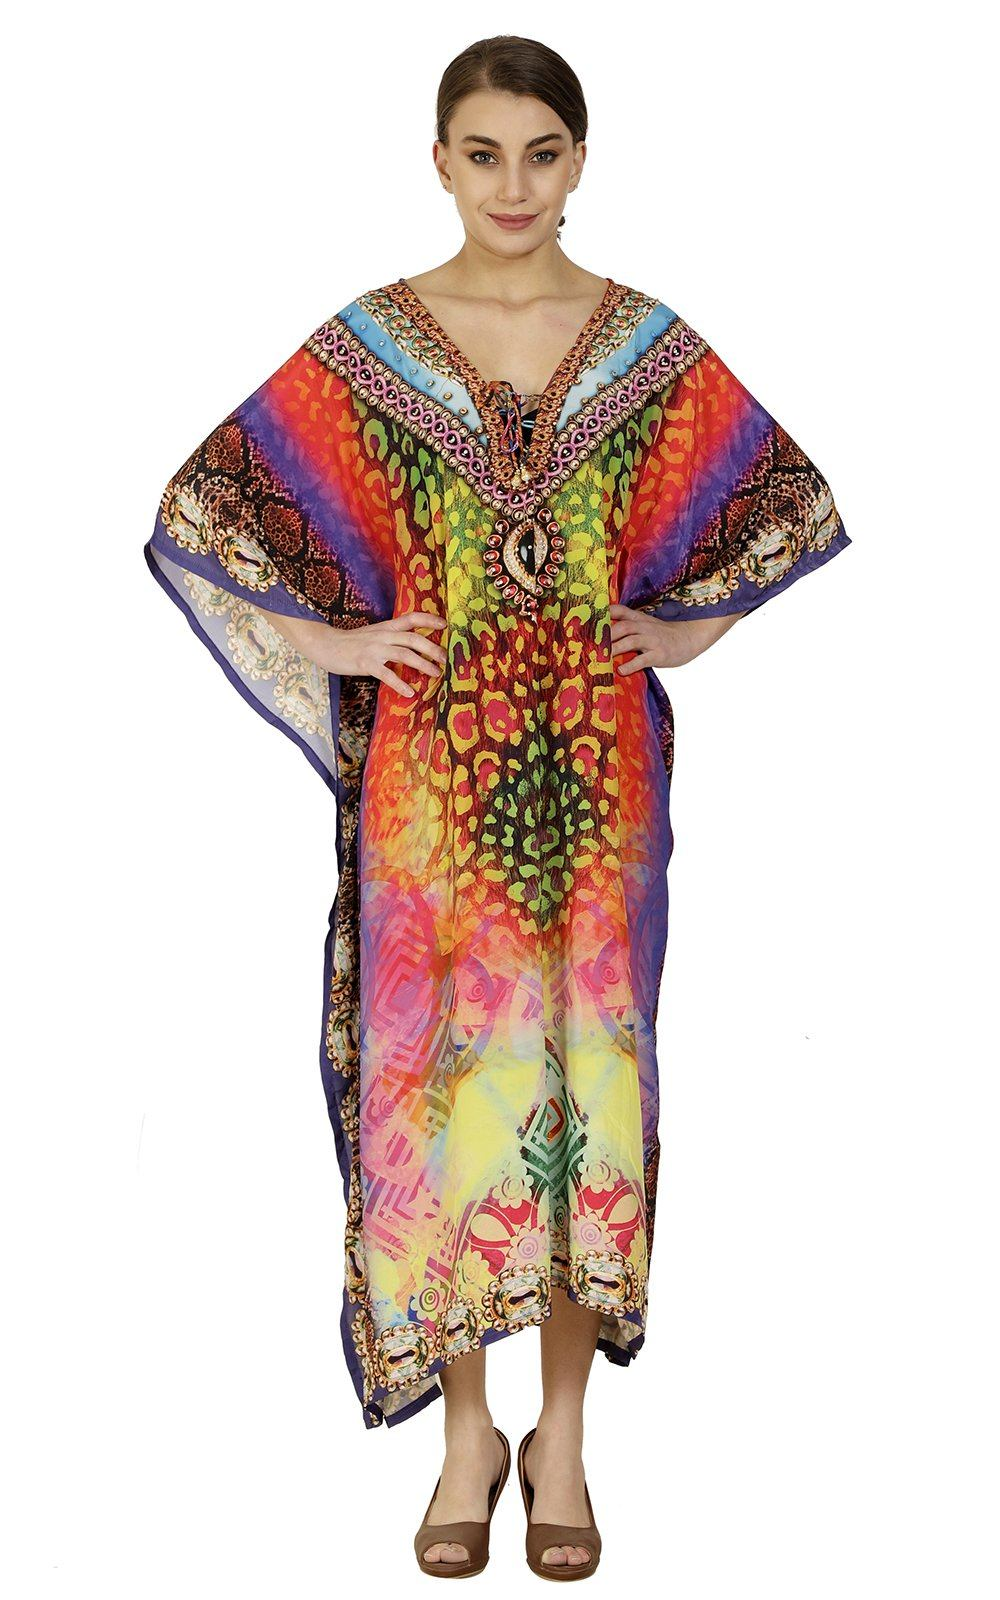 Wevez Pack of 03 Elegant Batwing Sleeve Kimono Long Dress